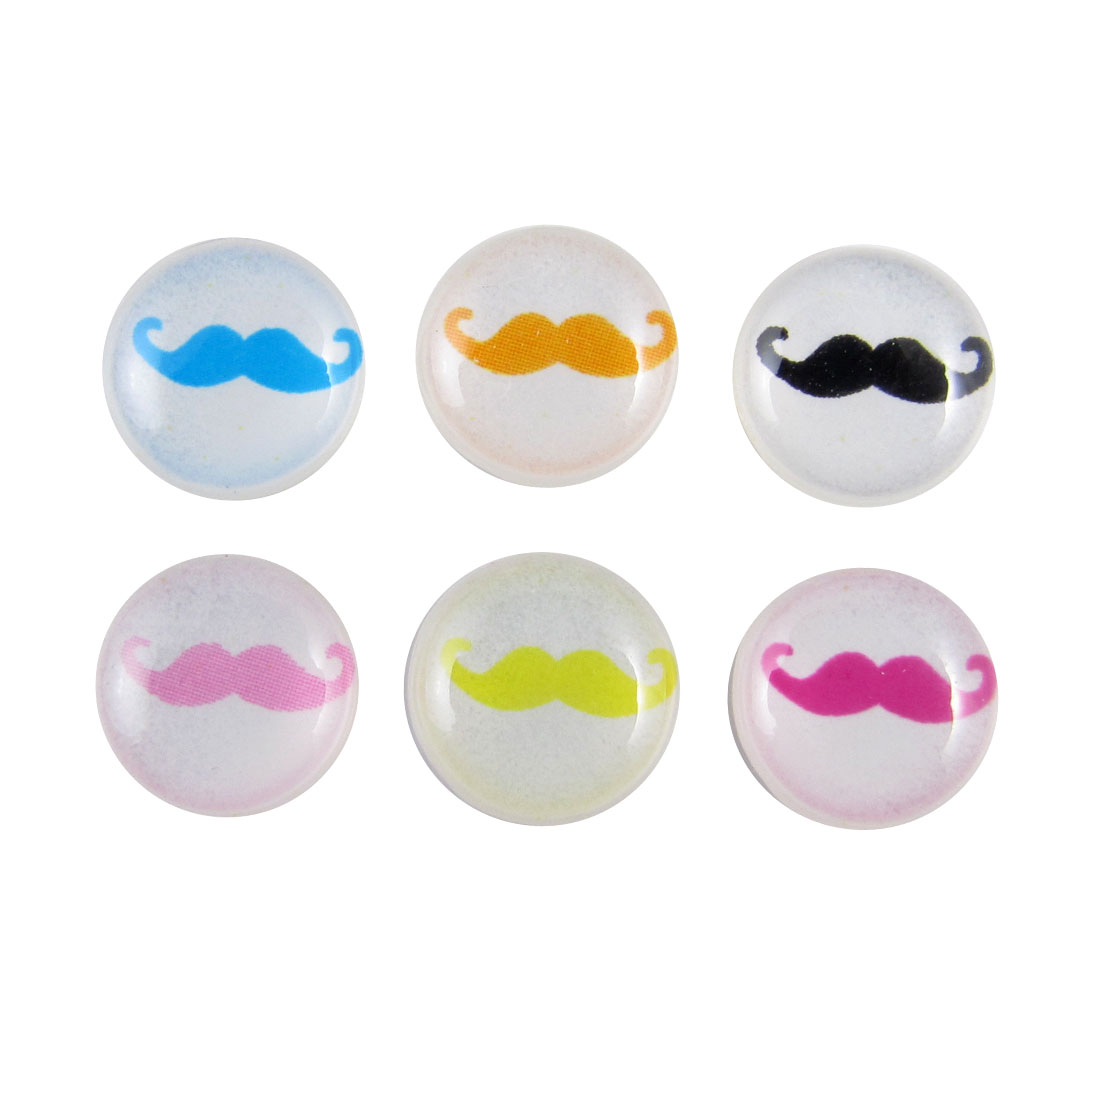 Colorful Mustache Home Button Stickers 6 in 1 for Cell Phone